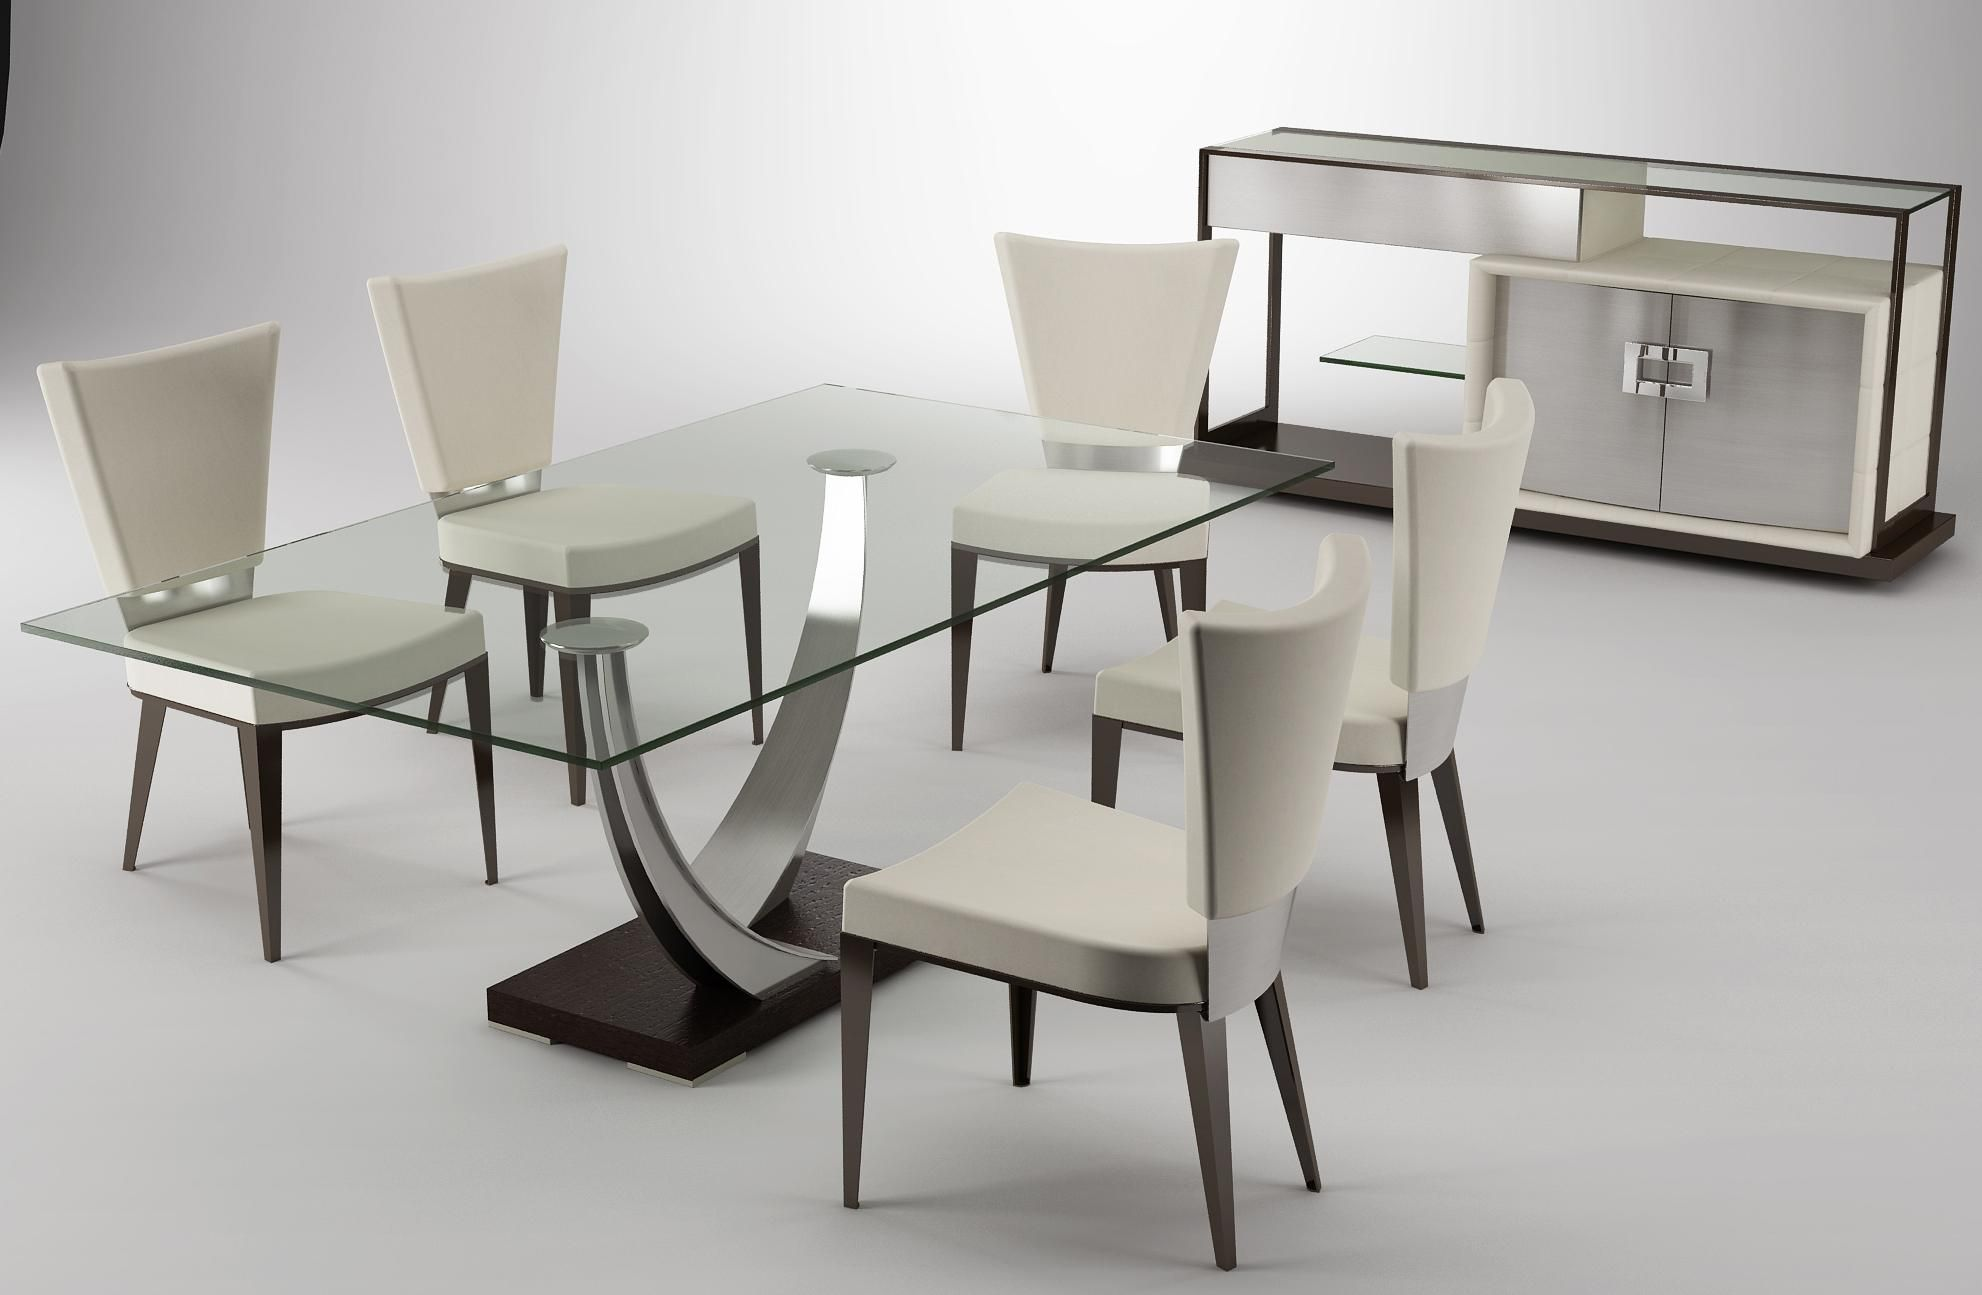 Amazing modern stylish dining room table set designs elite tangent glass top furniture stores - Dining room table contemporary ...